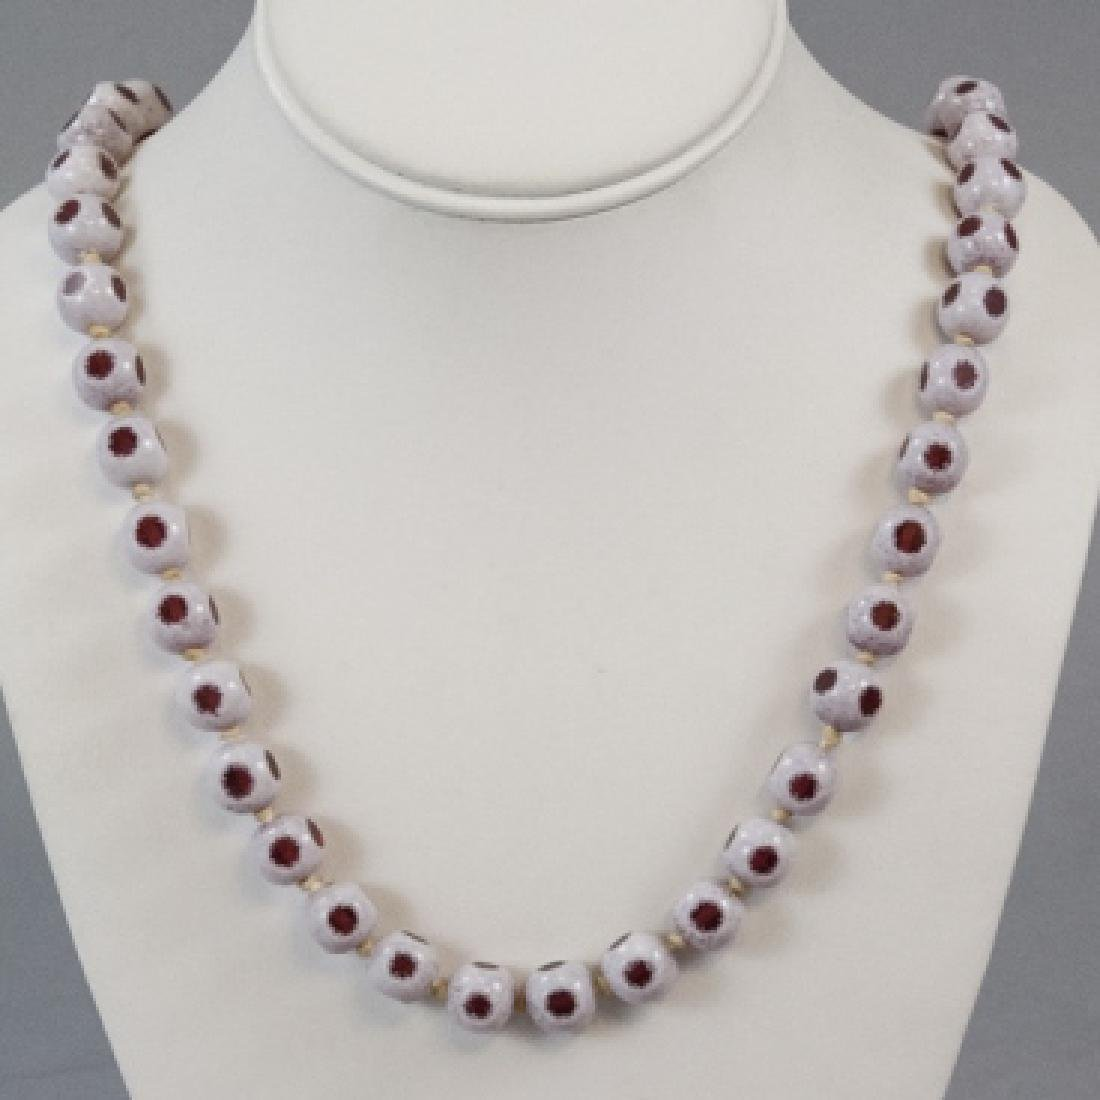 Antique Bohemian Glass Bead Necklace Strand